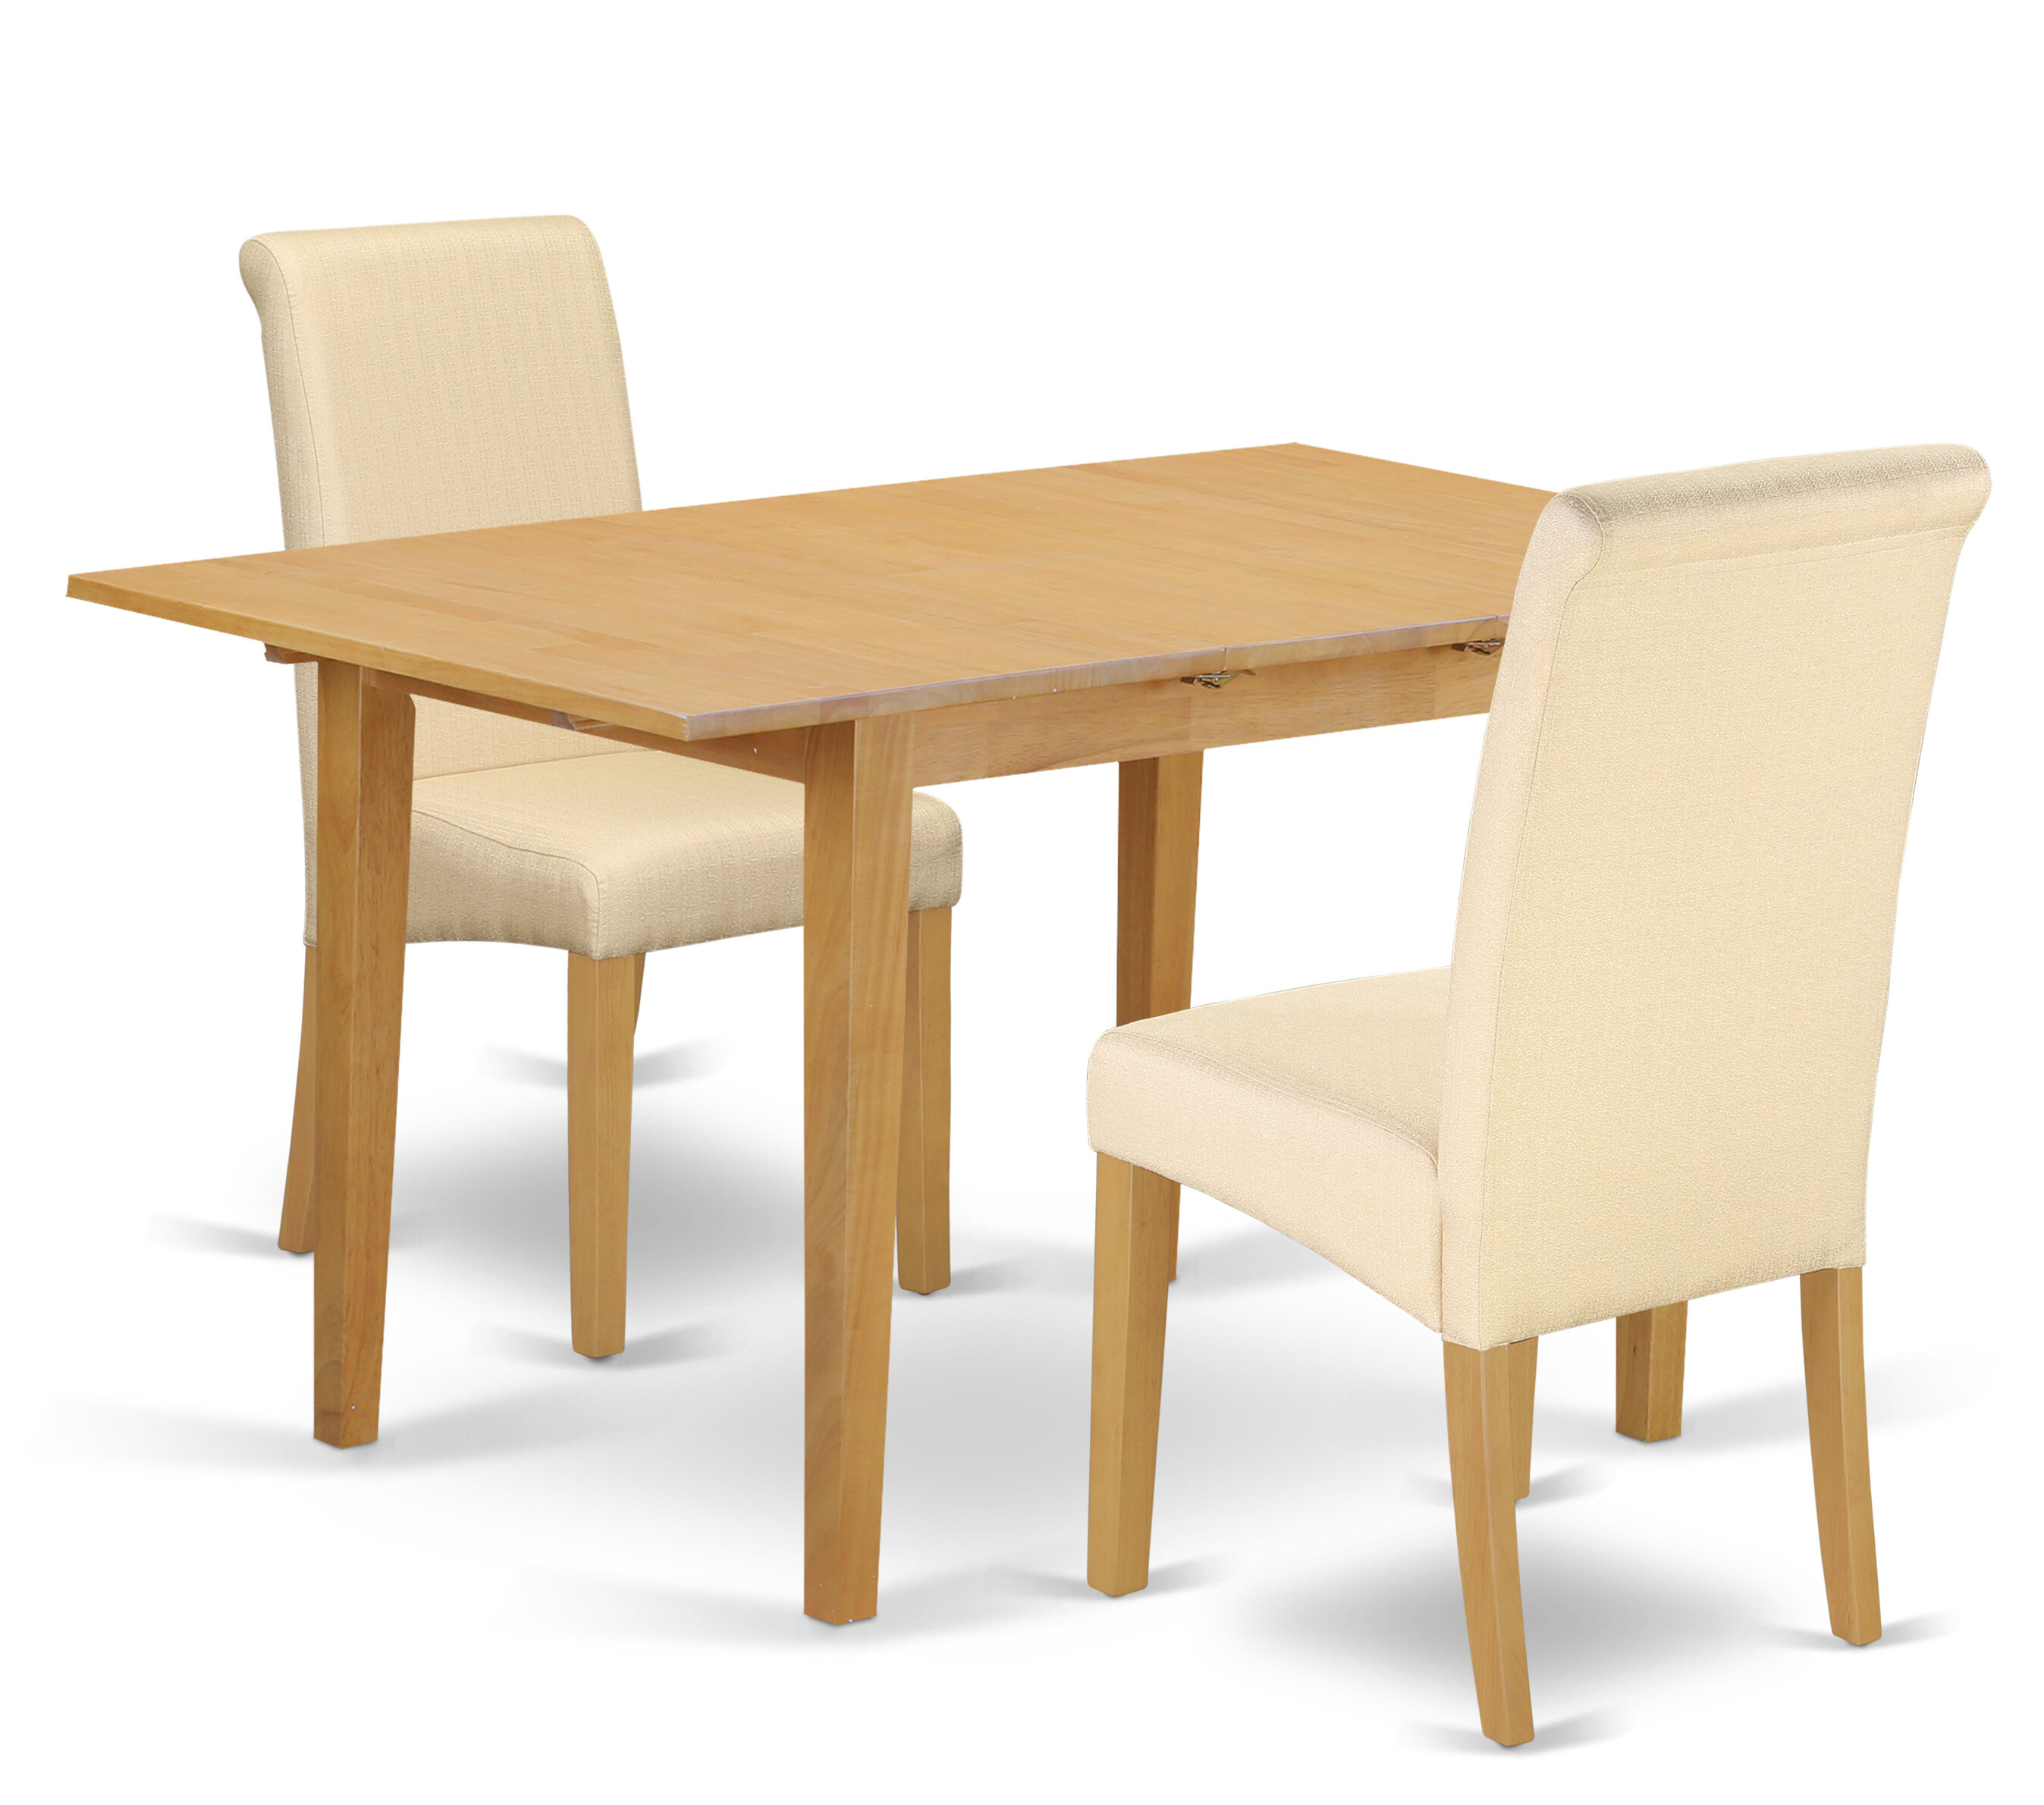 Winston Porter Carlie Kitchen Table 3 Piece Extendable Solid ...